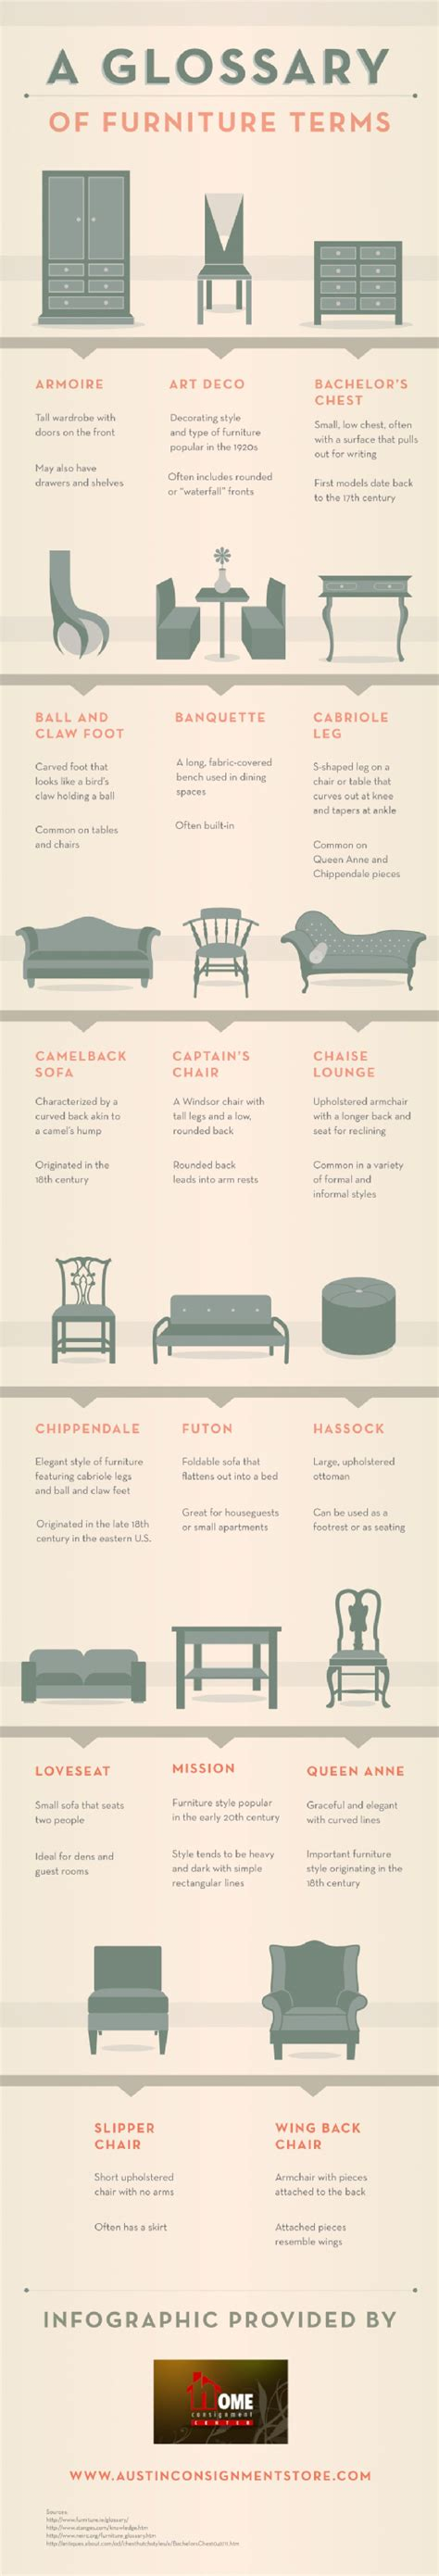 Furniture design vocabulary Image